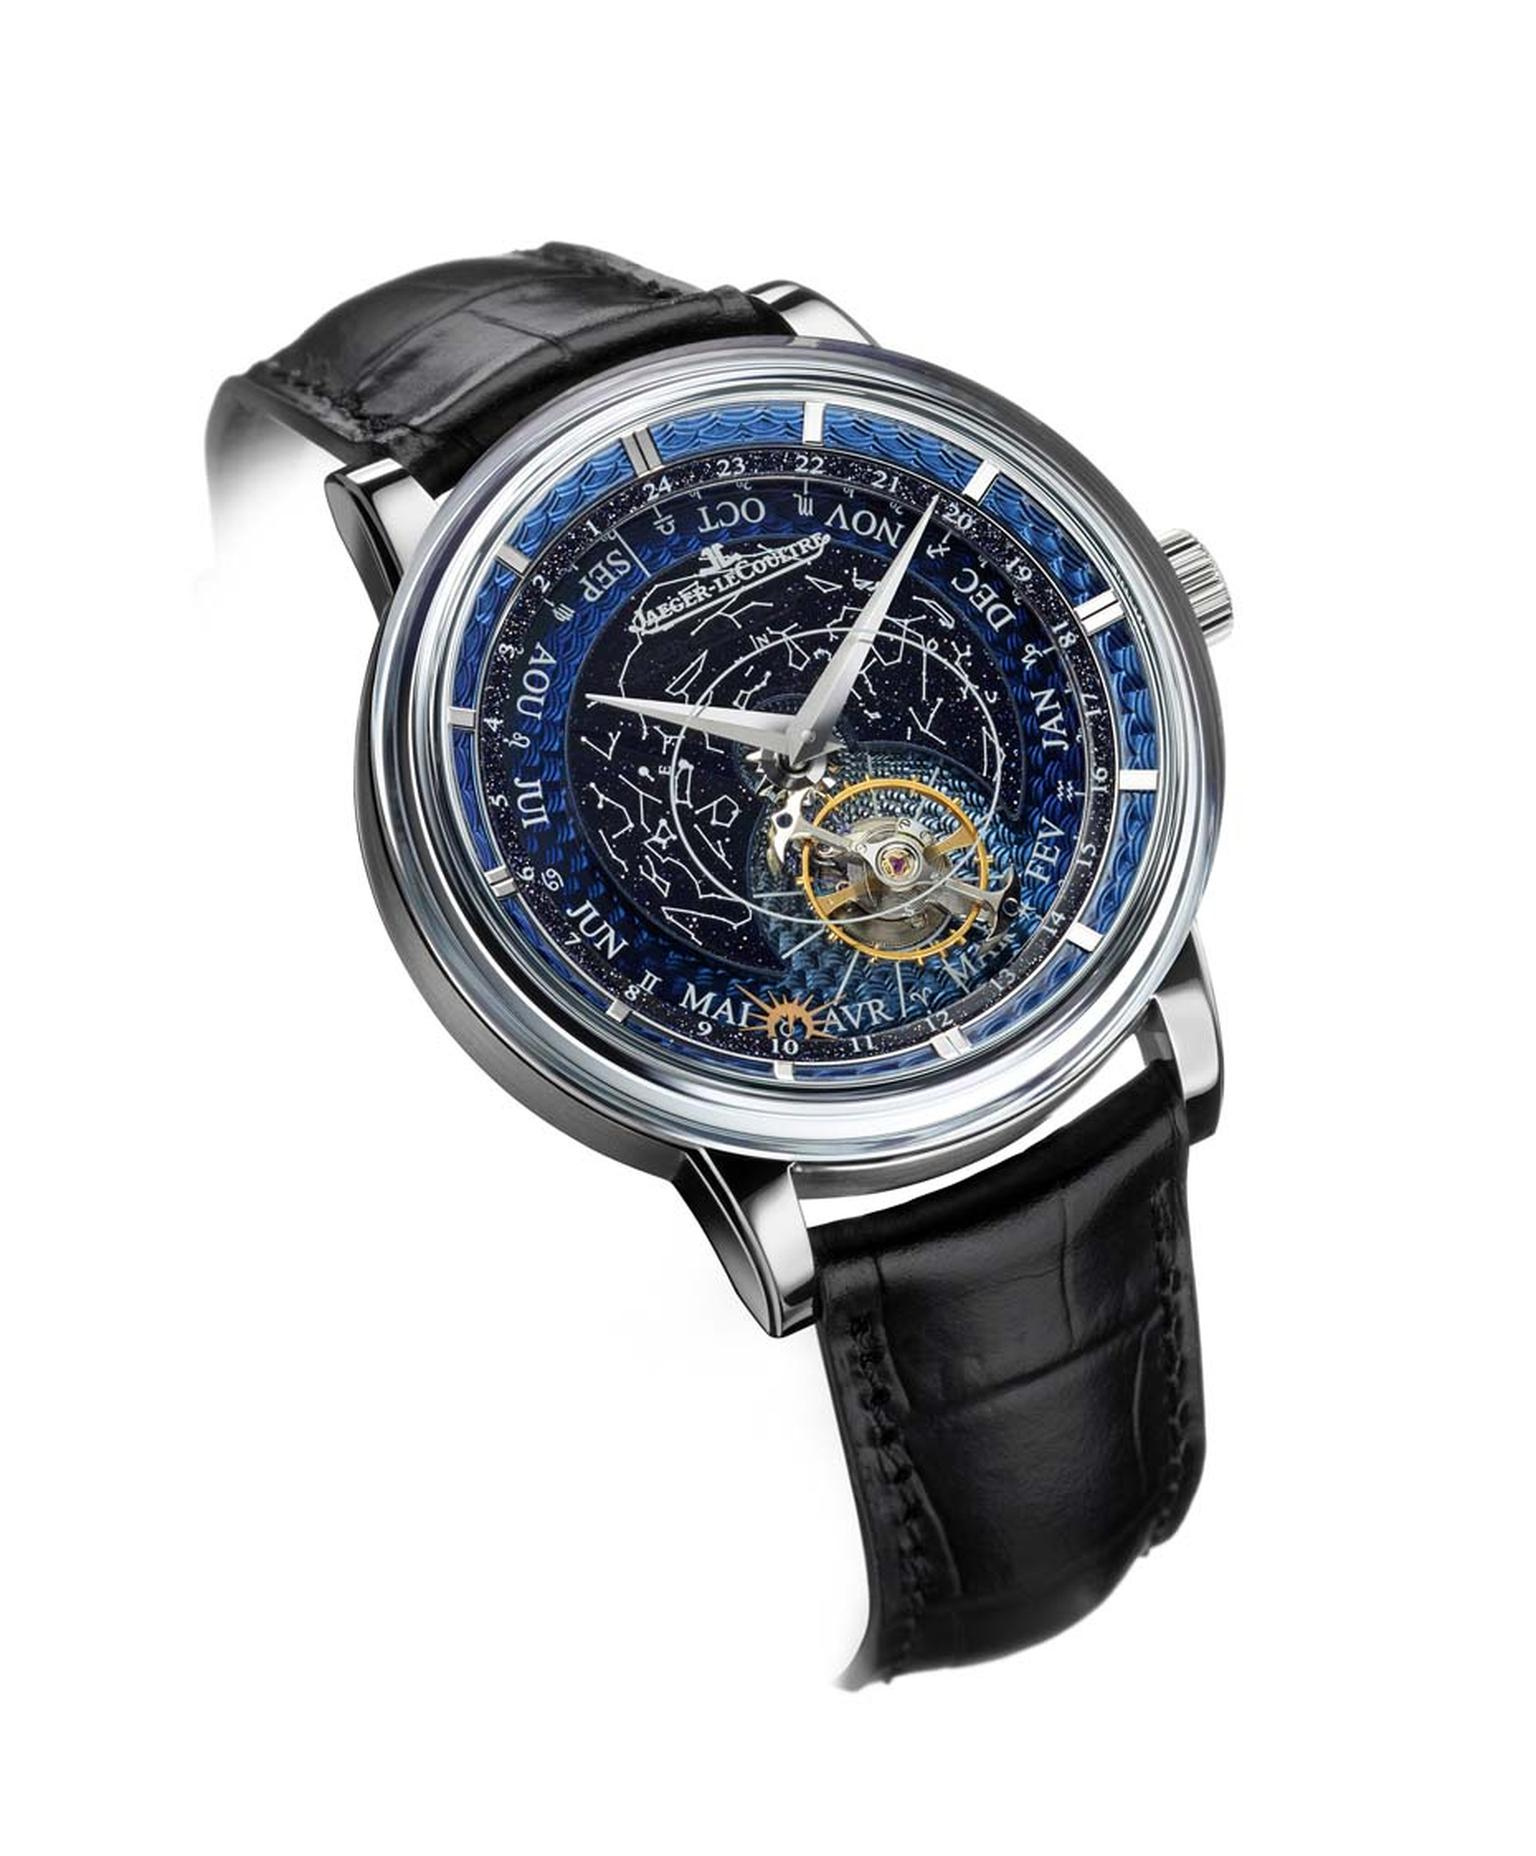 By combining guilloché and translucent enamel to create textures and depth on the Jaeger-LeCoultre Hybris Artistica Collection Master Grande Tradition Tourbillon Céleste watch, time literally floats in a beautiful blue firmament